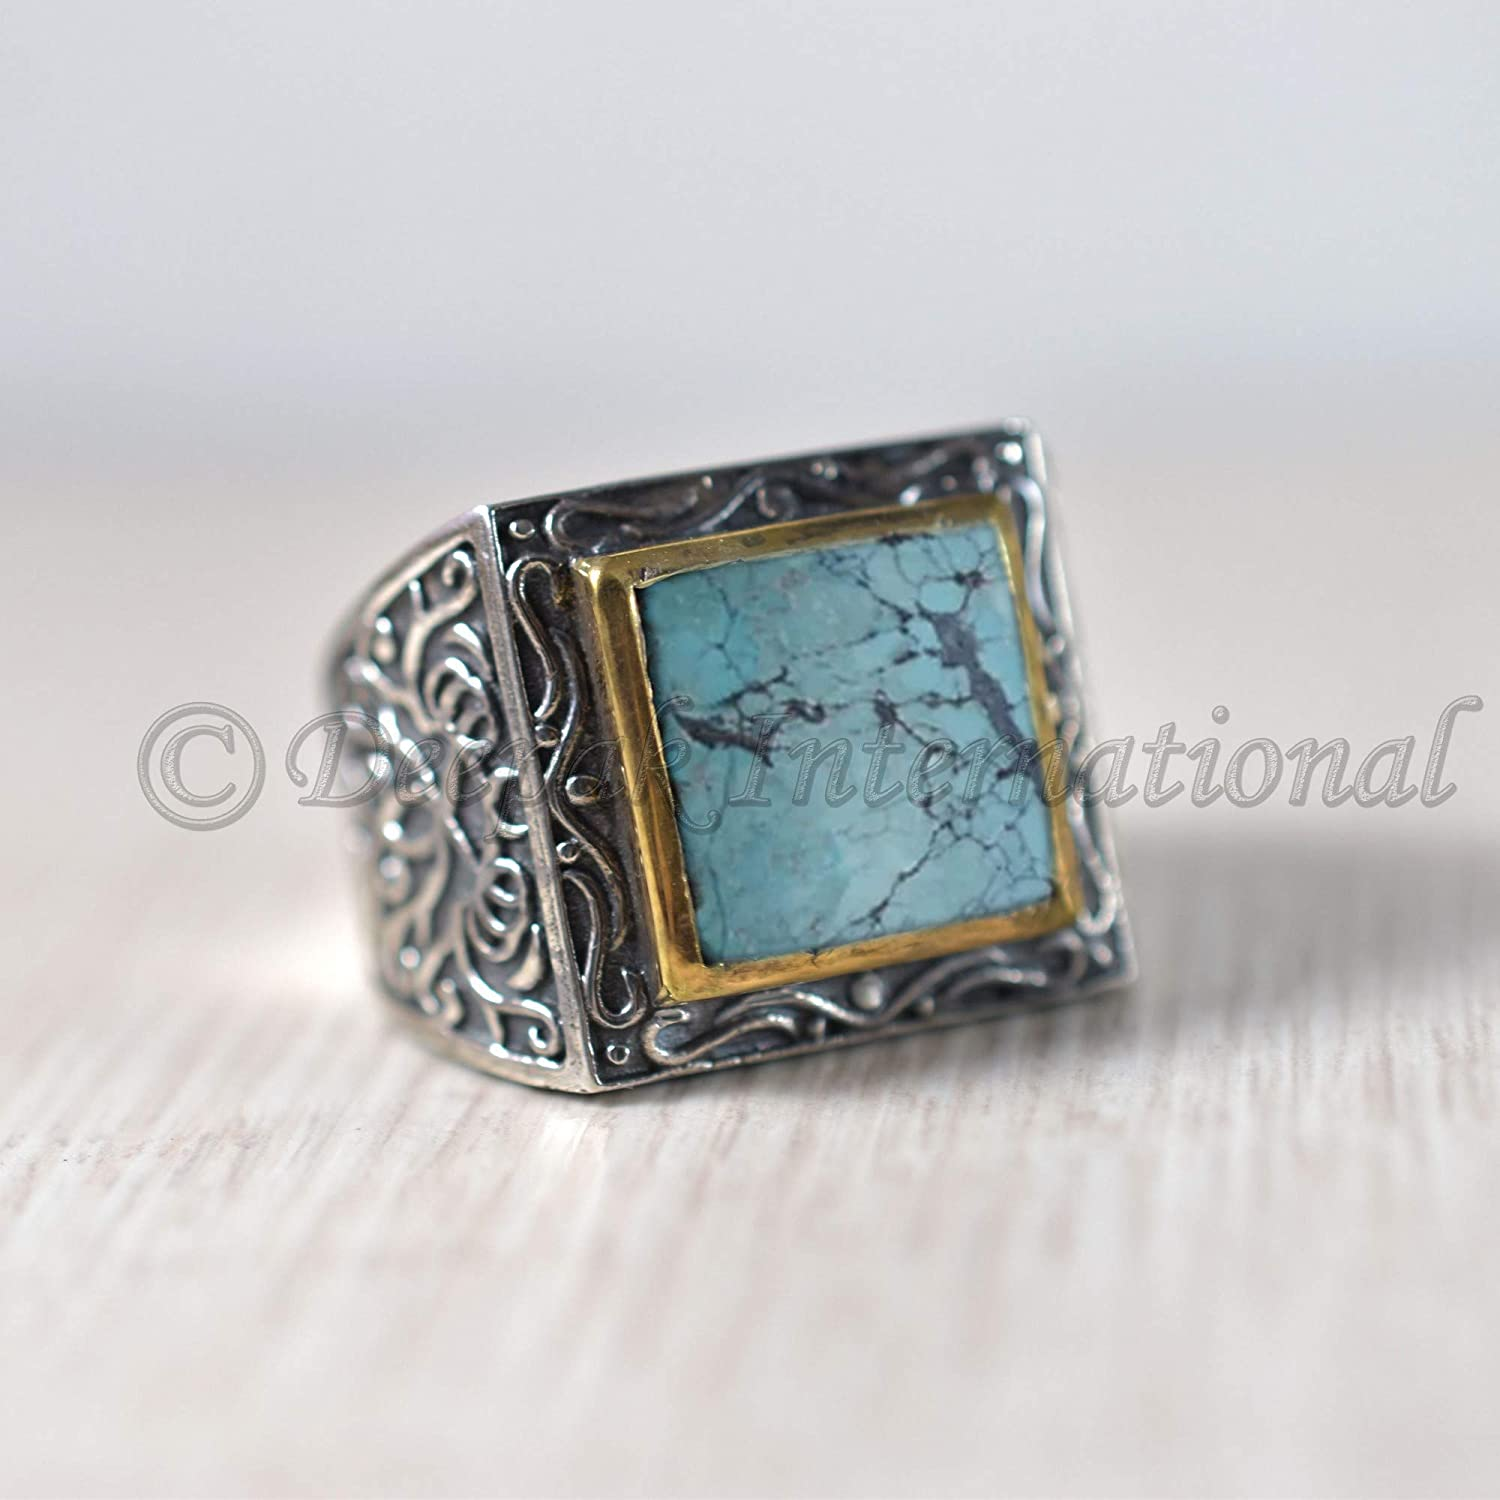 valentine day ring oxidized ring bohemian ring two tone ring natural tibetan turquoise mans ring heavy mens ring handmade silver ring square gemstone ring 925 sterling silver ring